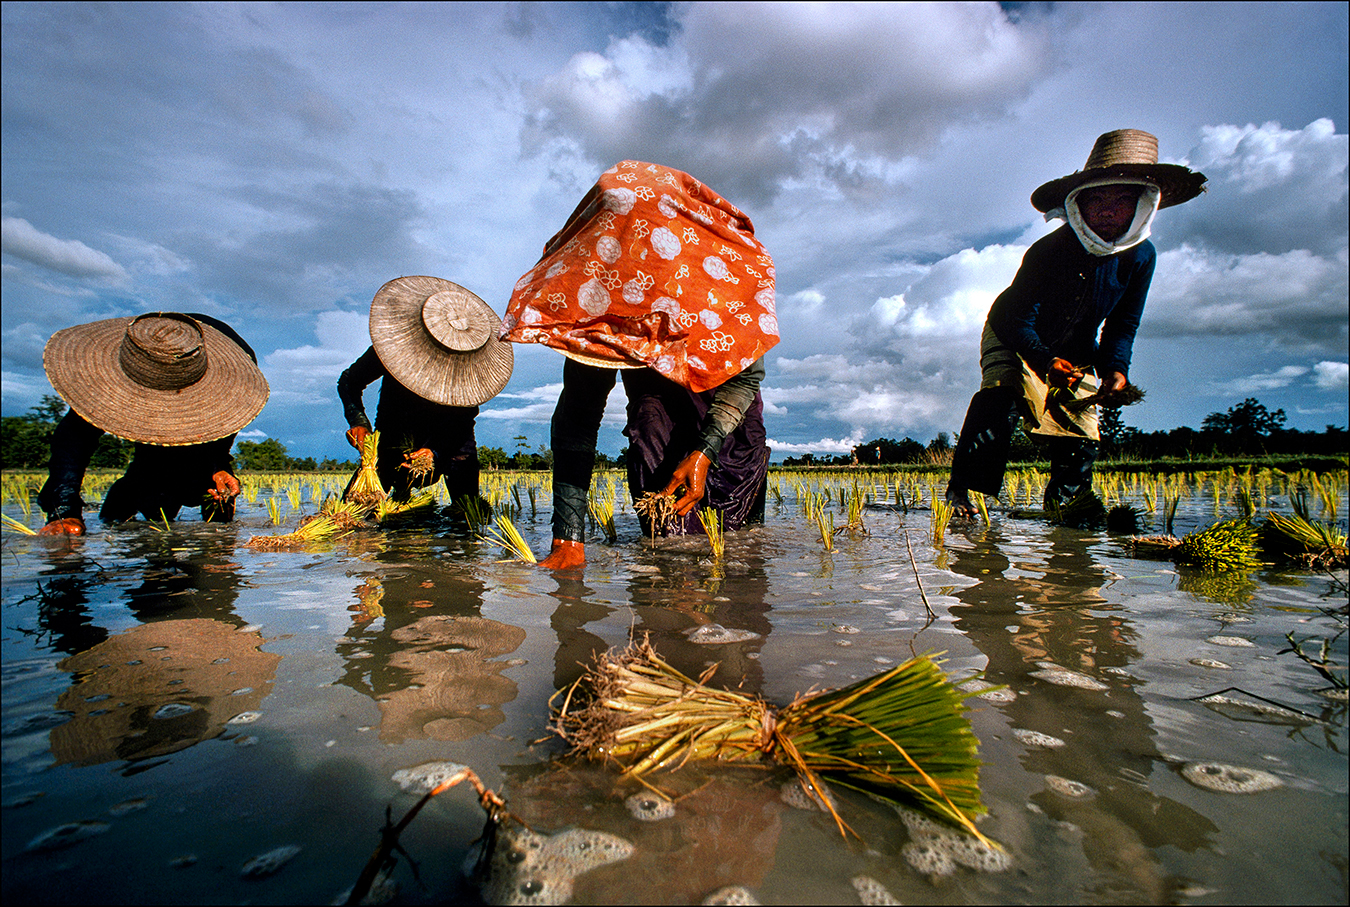 Transplanting rice seedlings is backbreaking work for Thai farmers, who in 2016–17 produced an estimated eighteen million metric tons of long-grain Jasmine rice. The world's largest producer of rice, Thailand harvests two crops a year in the wet and dry seasons. | © Steve Raymer / National Geographic Creative